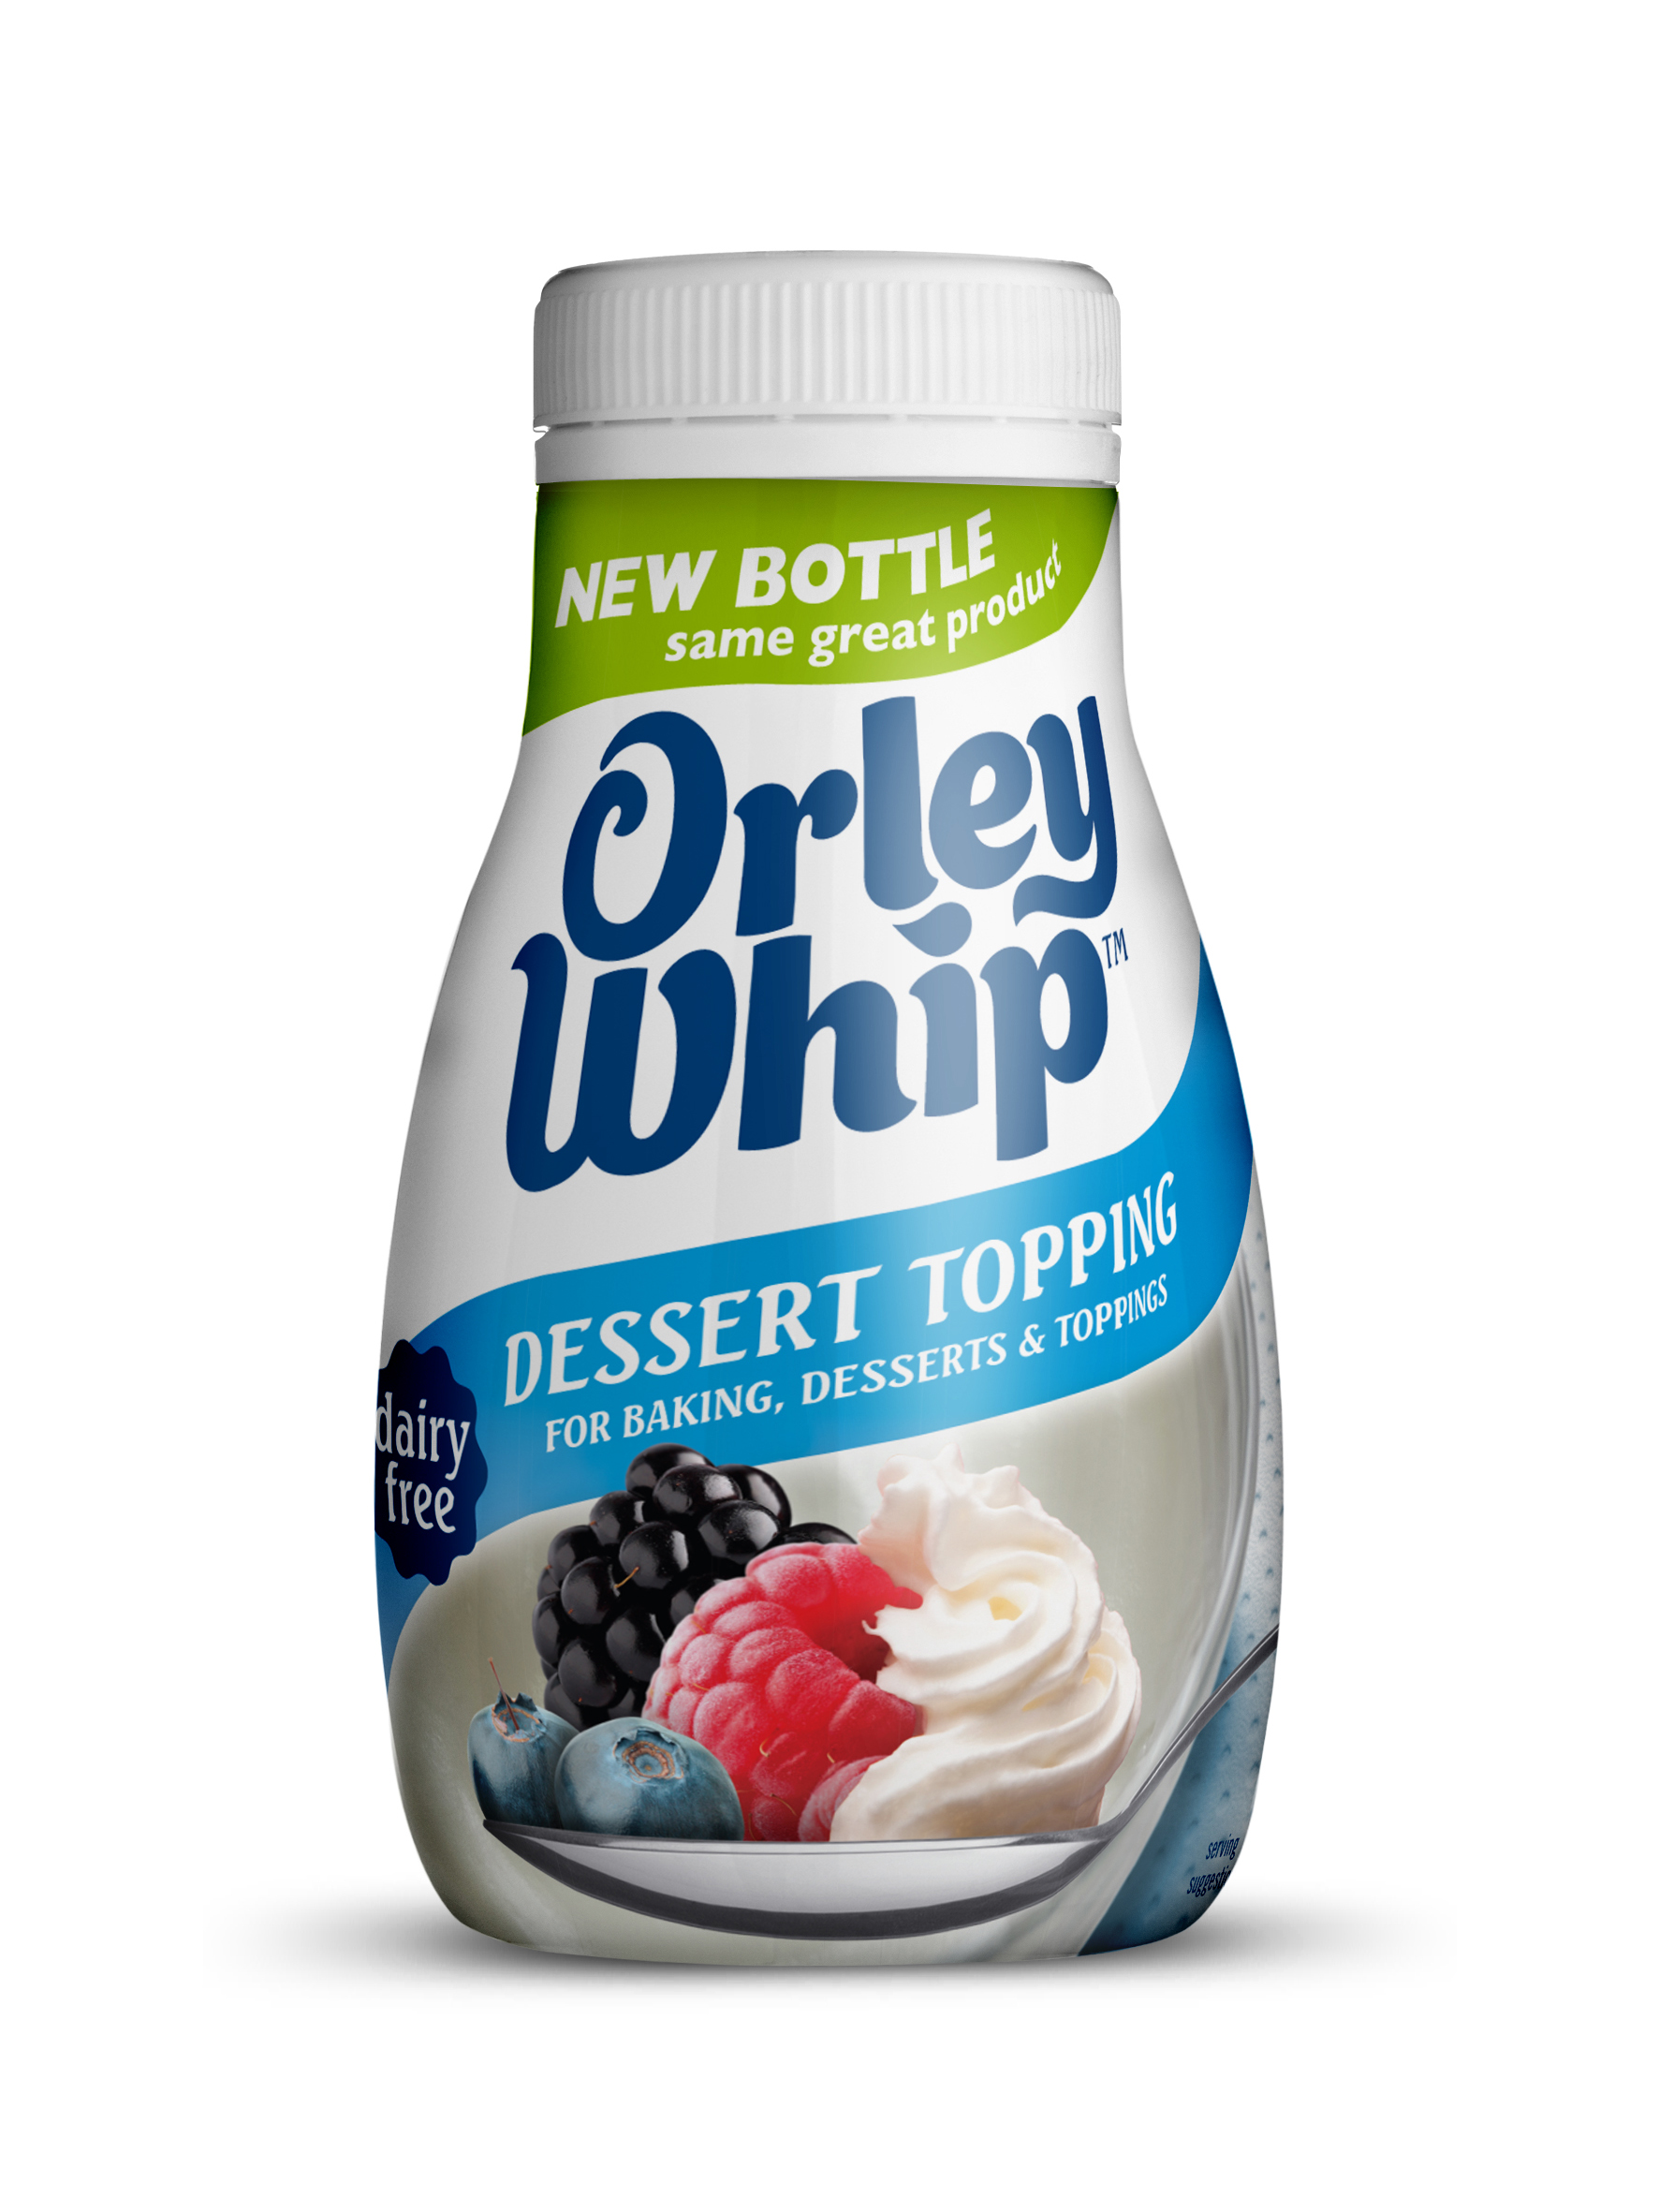 Pic.: Orley Whip dessert in a bottle